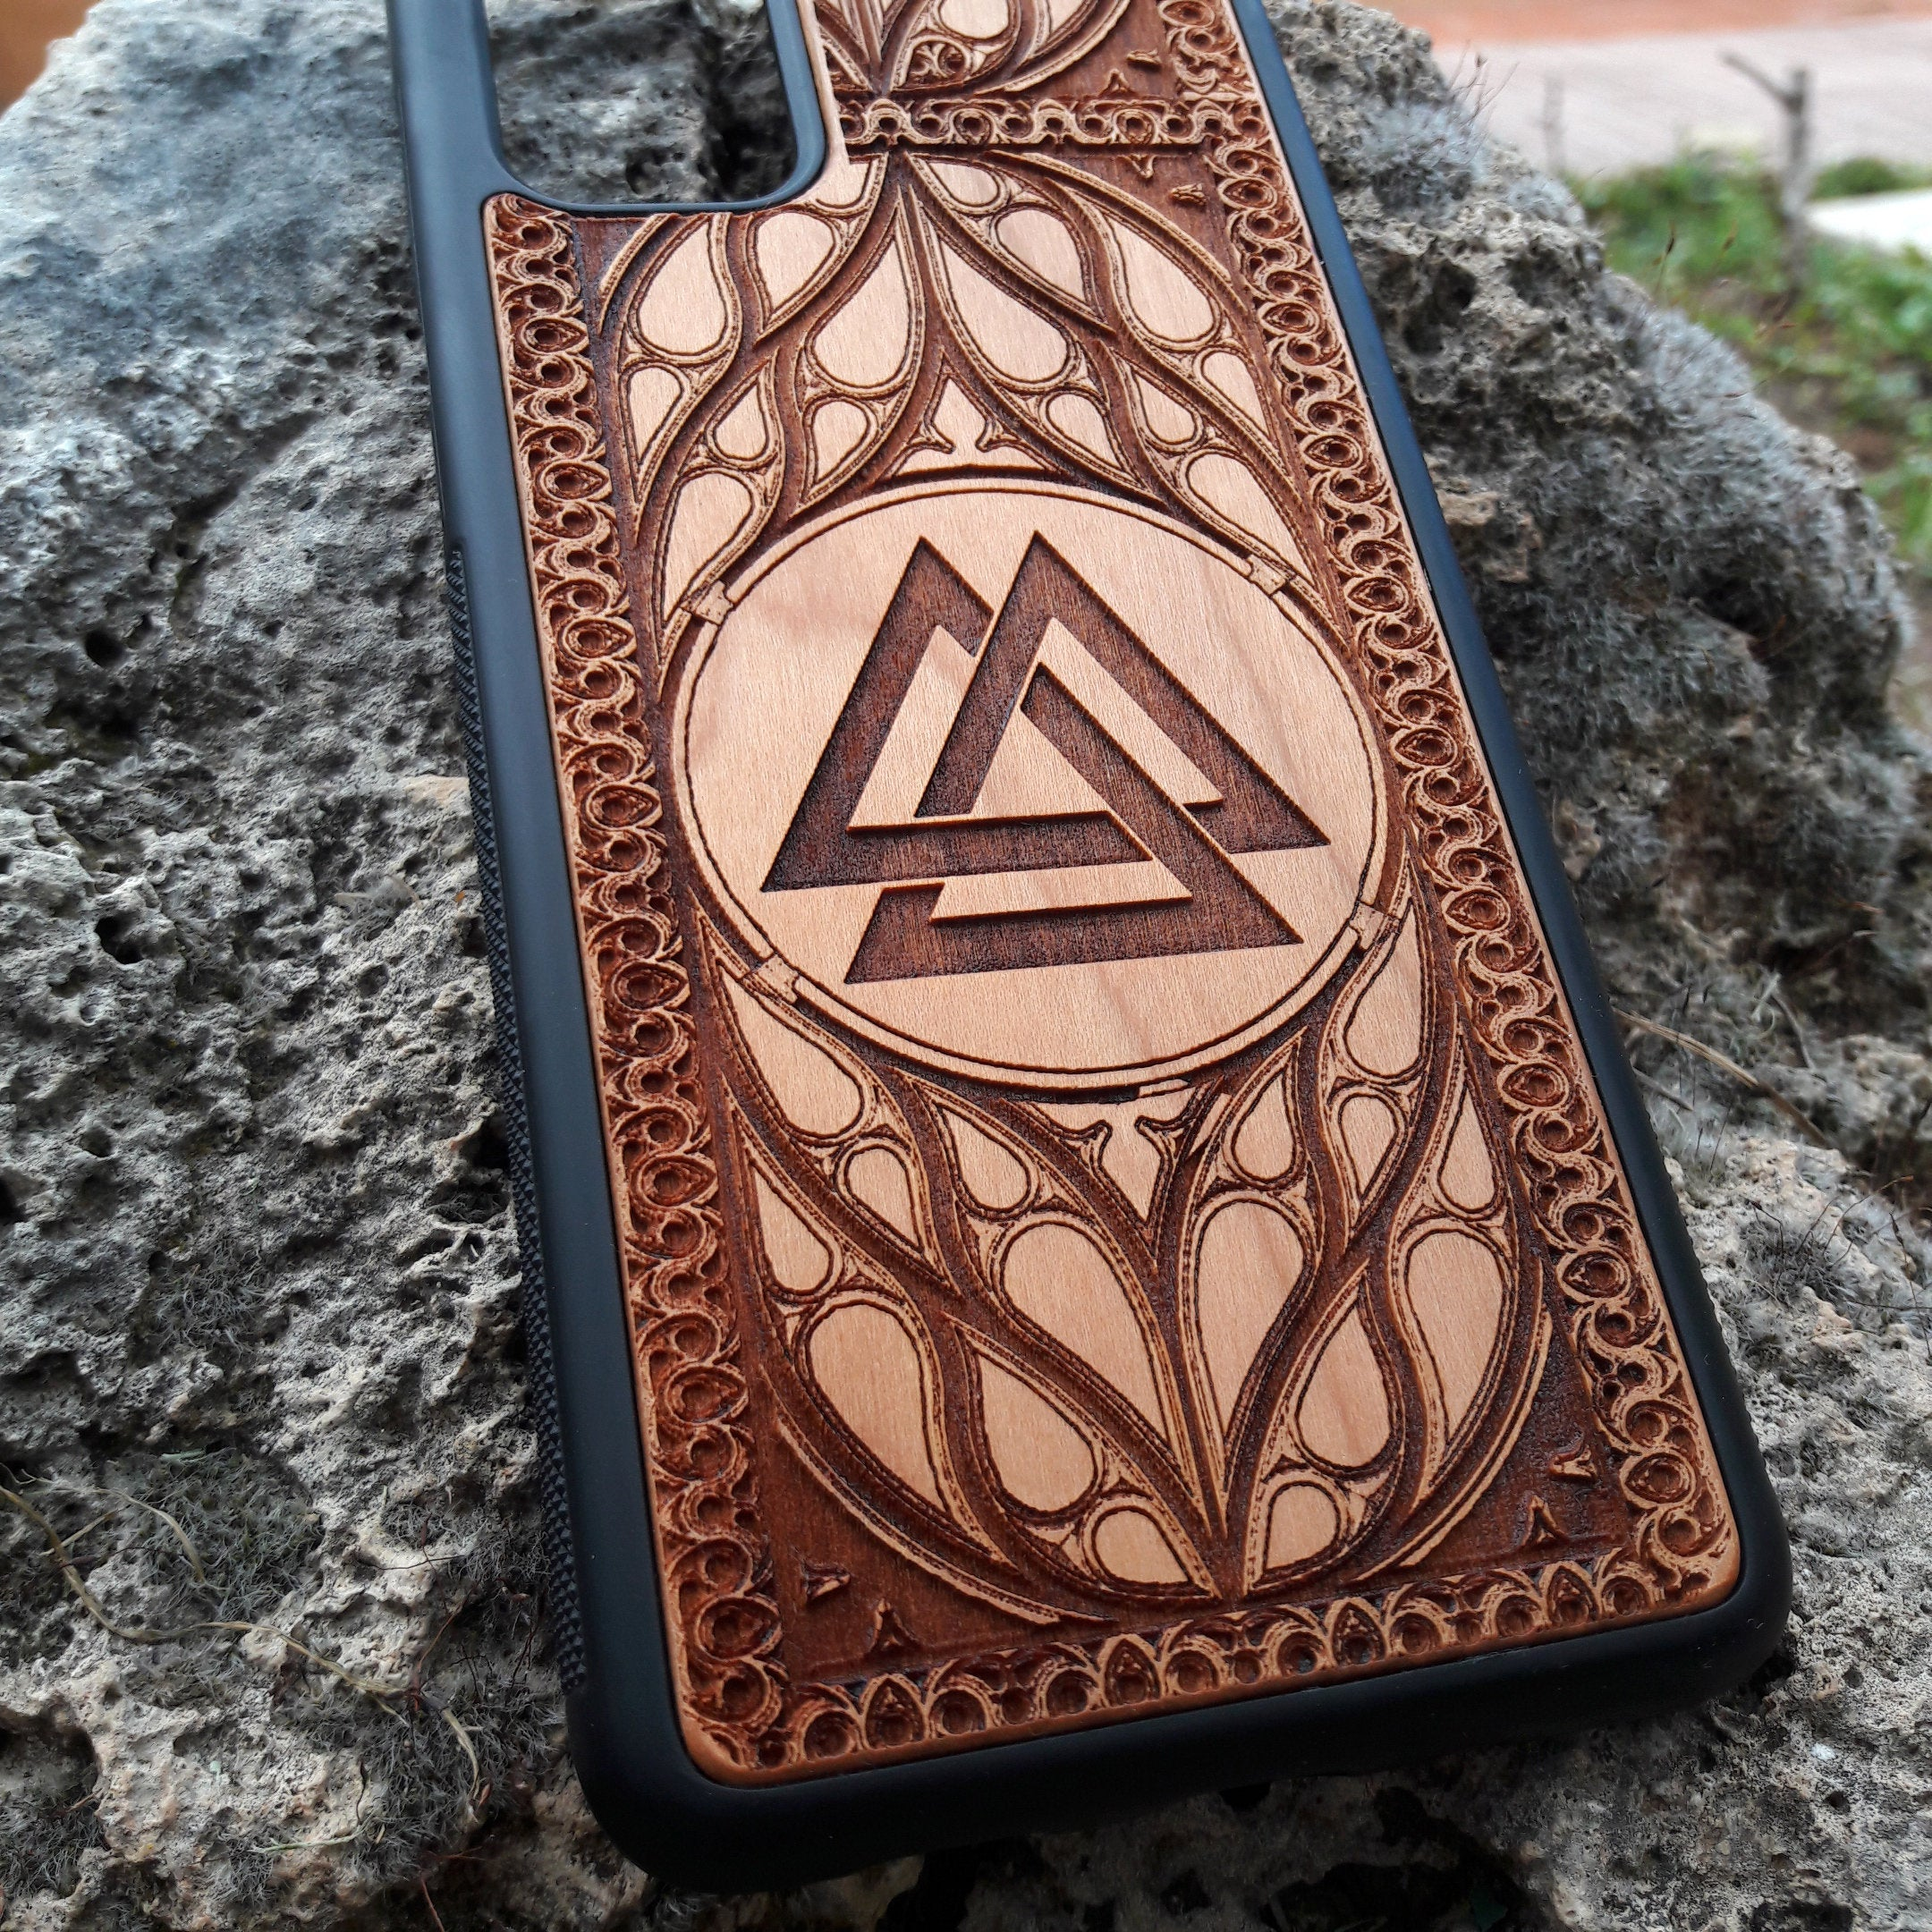 Valknut phone cases fit iPhone, Samsung